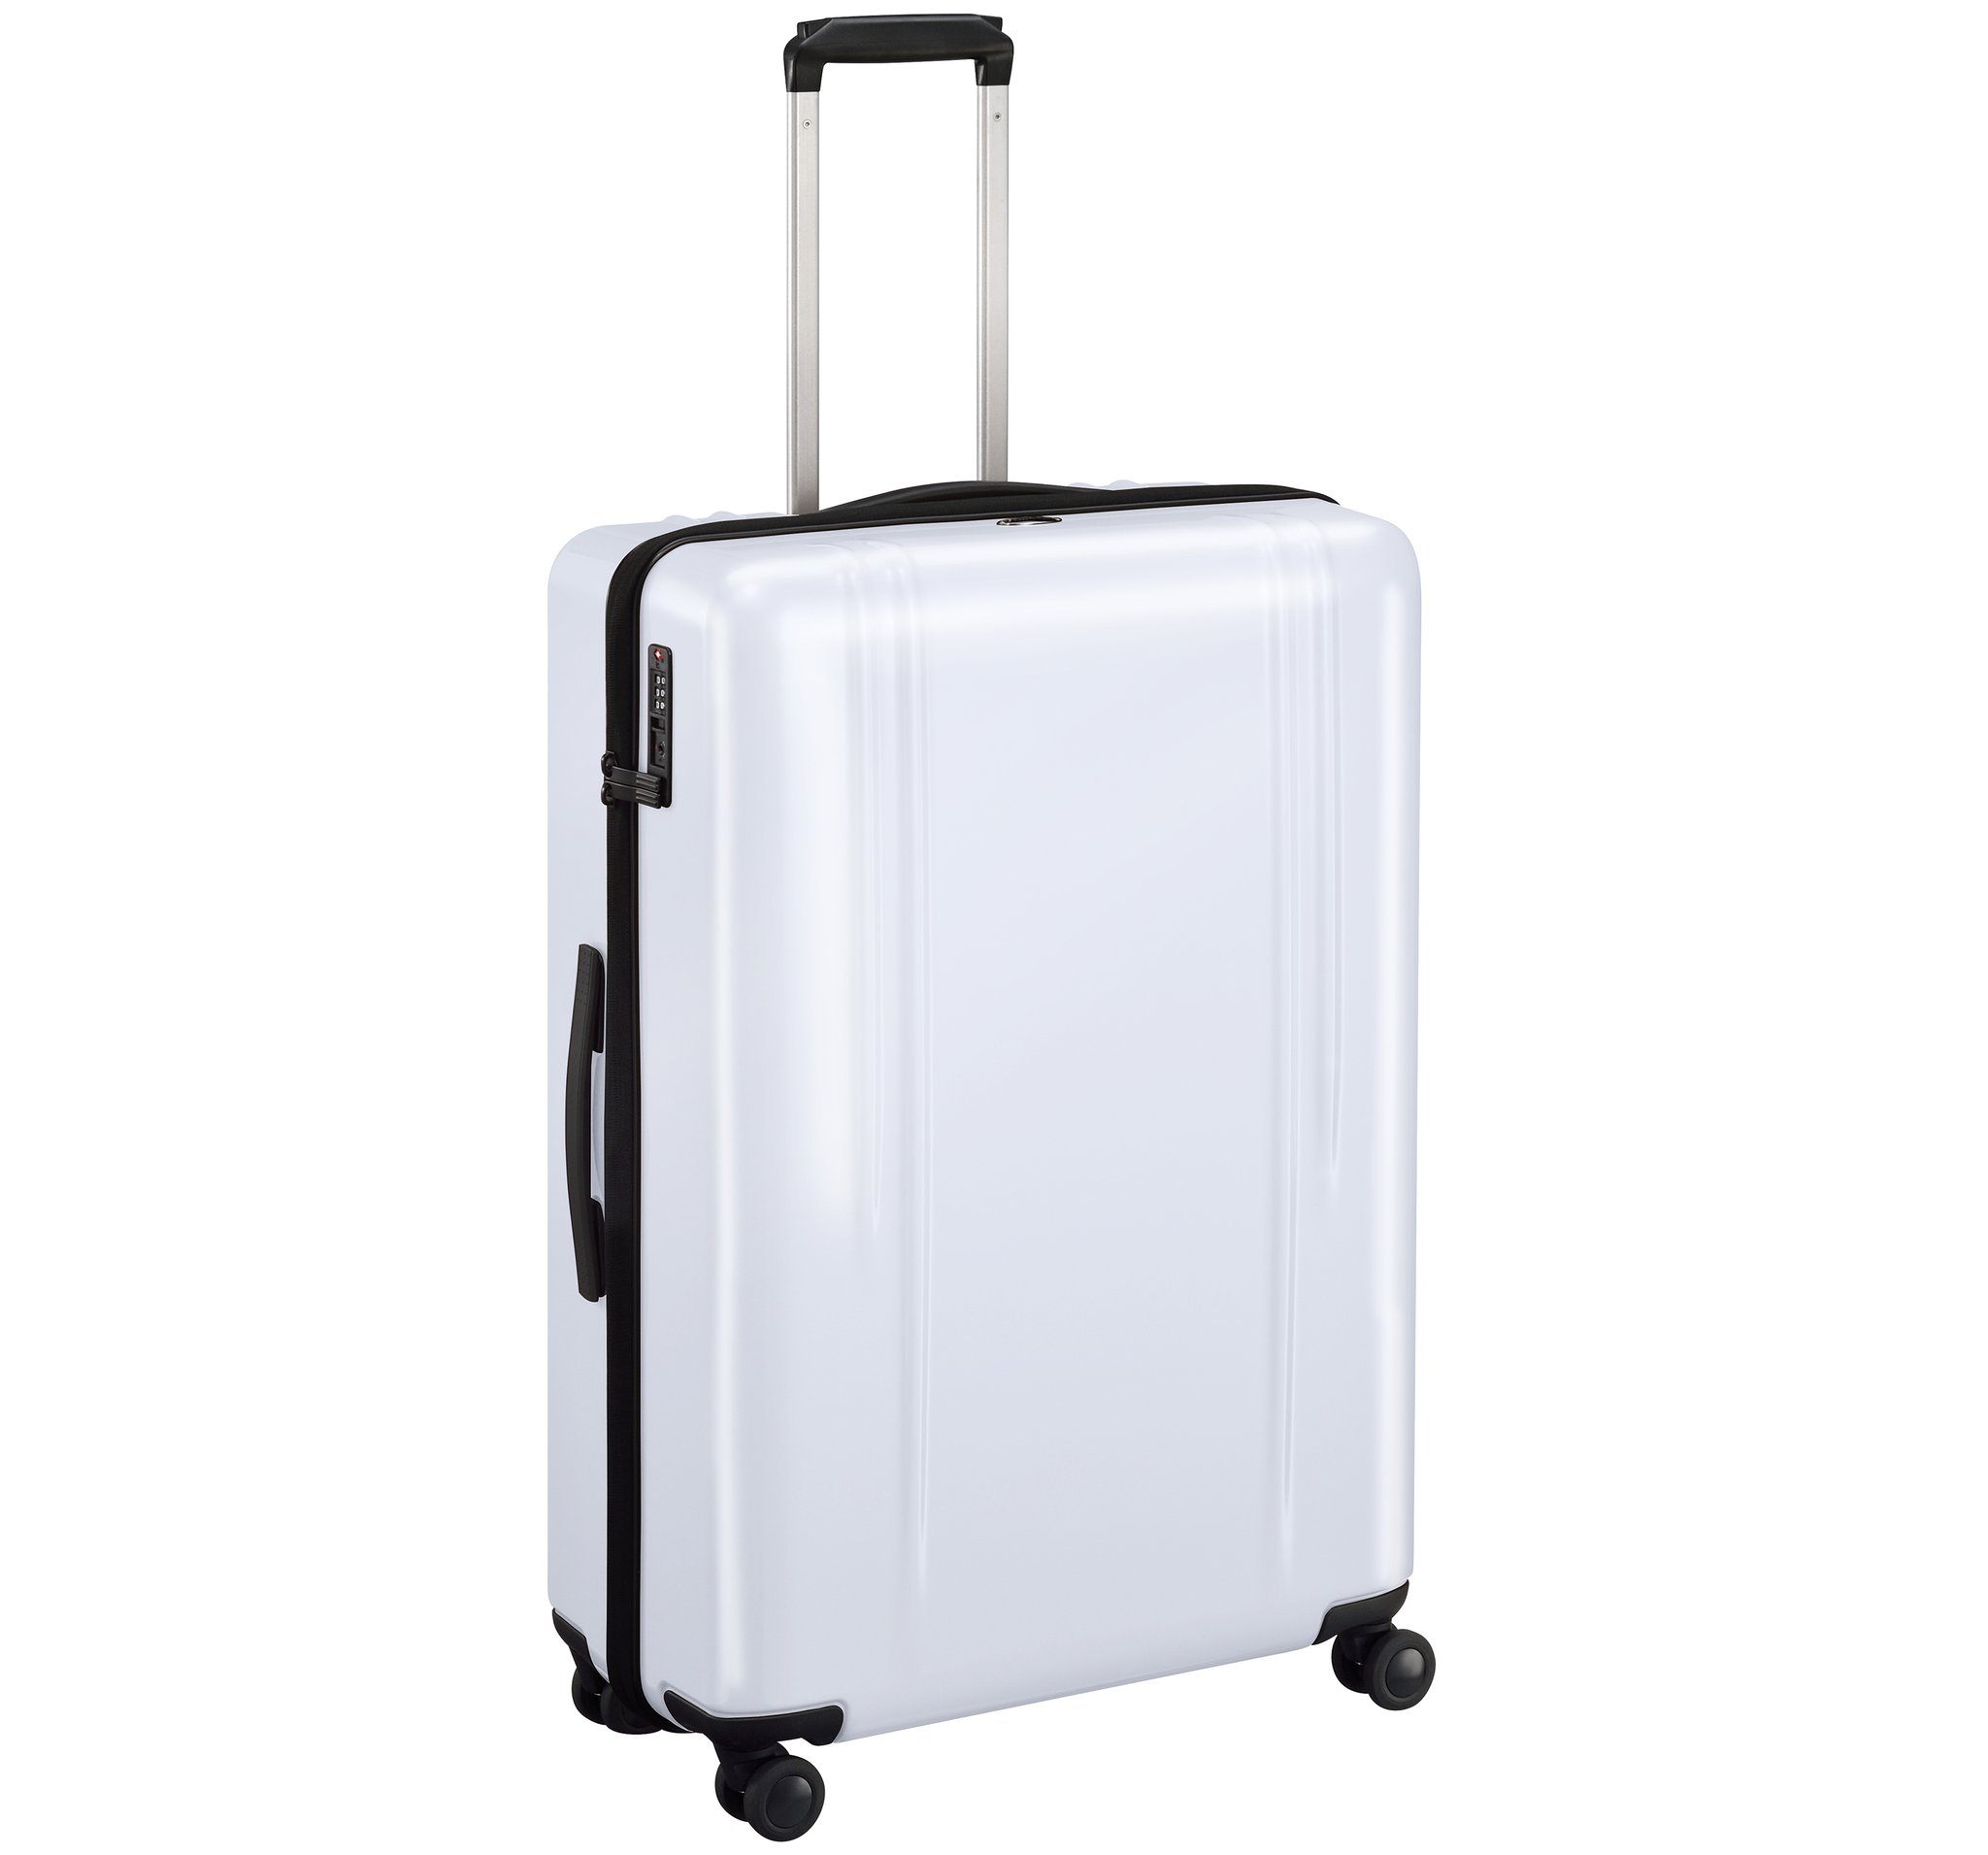 "ZRL - 28"" Lightweight Luggage by Zero Halliburton (Color: White)"